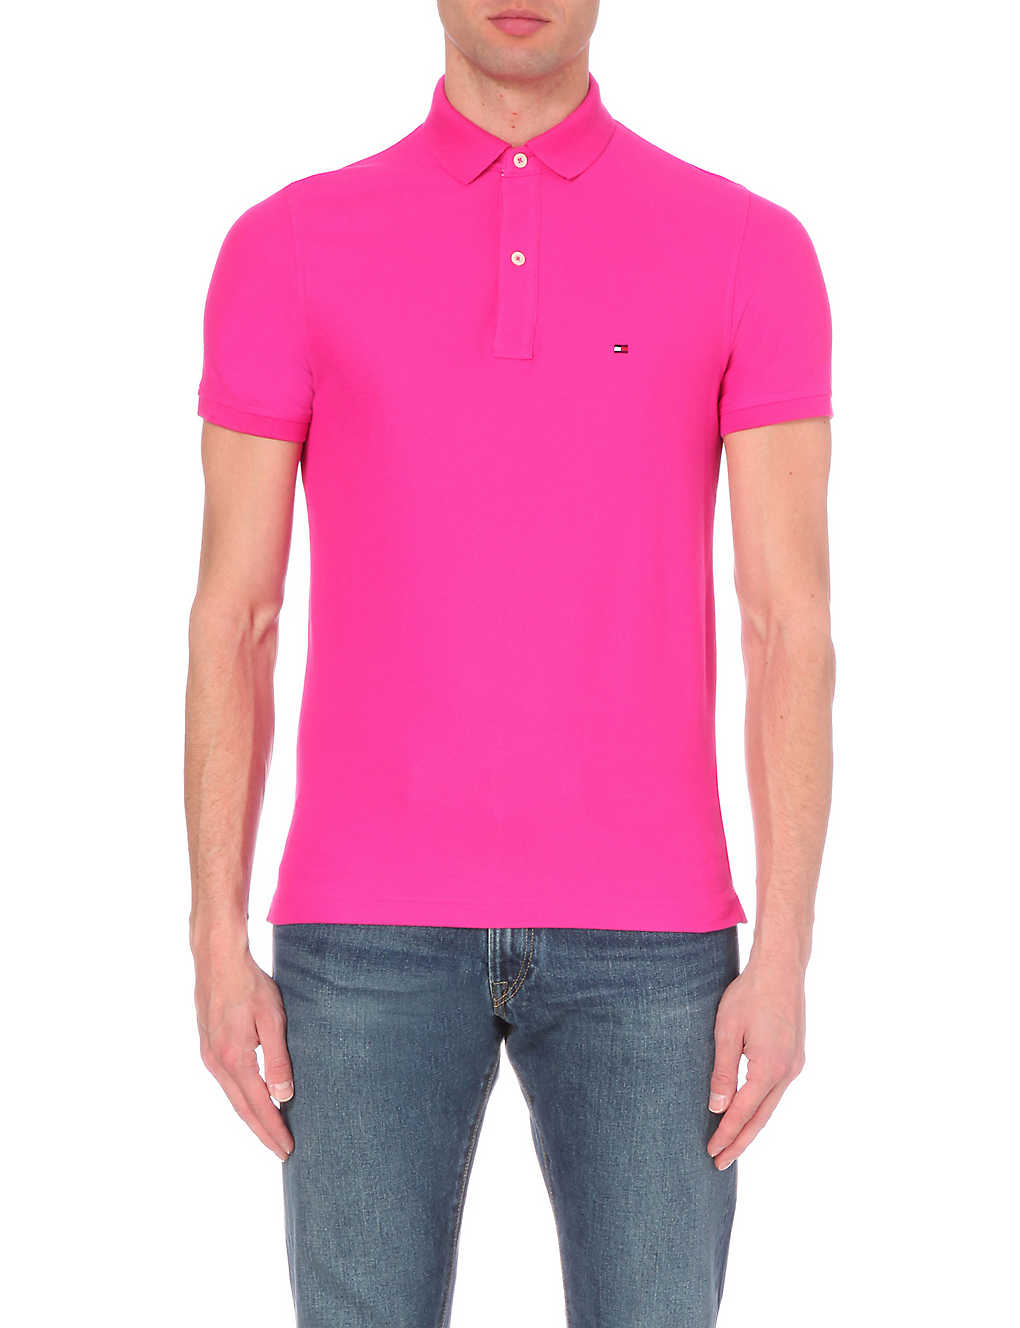 8abbfedf3388 TOMMY HILFIGER - summer regal short-sleeved polo shirt